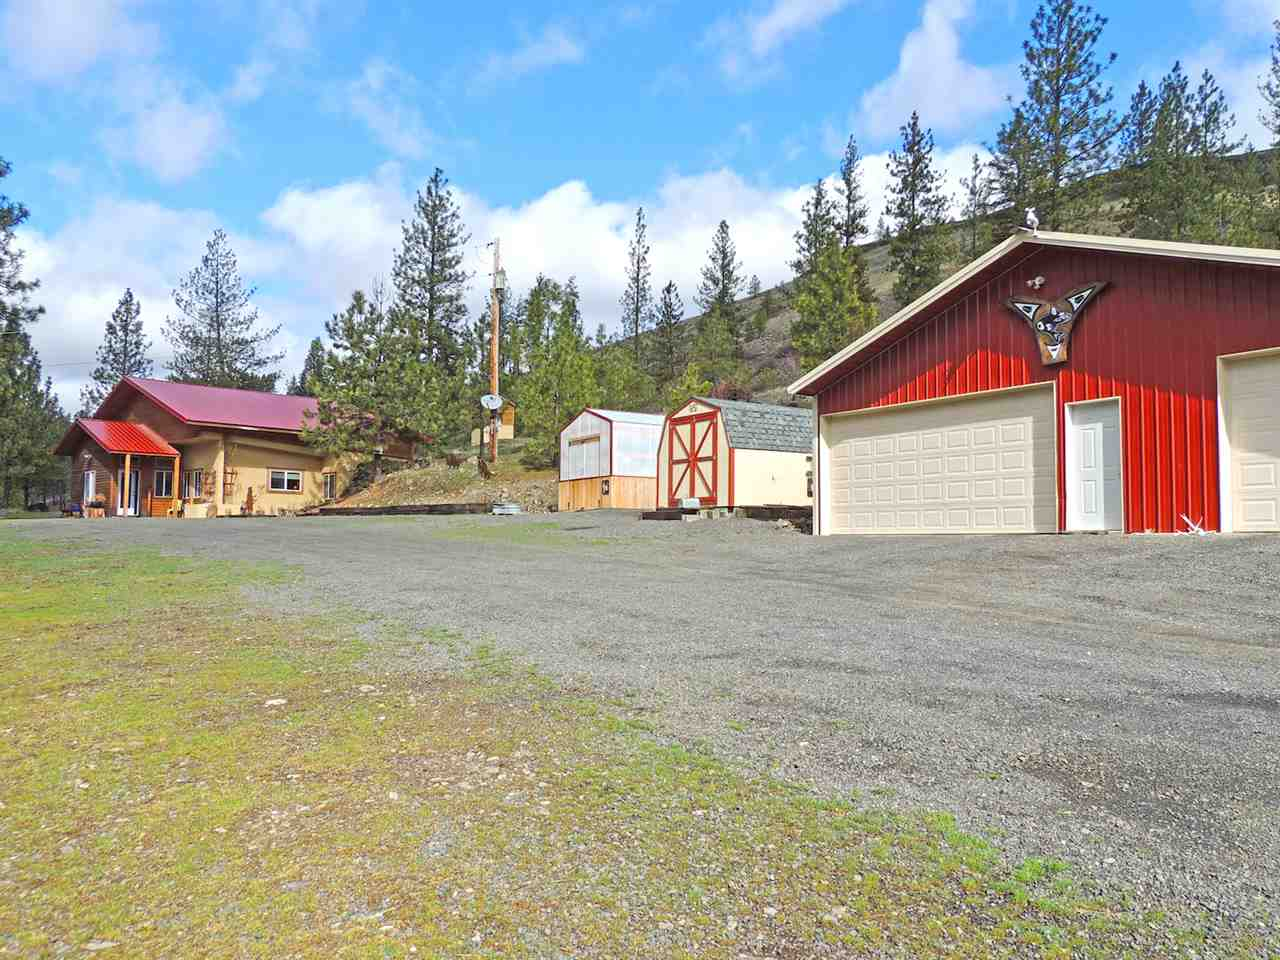 Single Family Home for Sale at 32697 Hawk Creek Ranch Rd N 32697 Hawk Creek Ranch Rd N Davenport, Washington 99122 United States